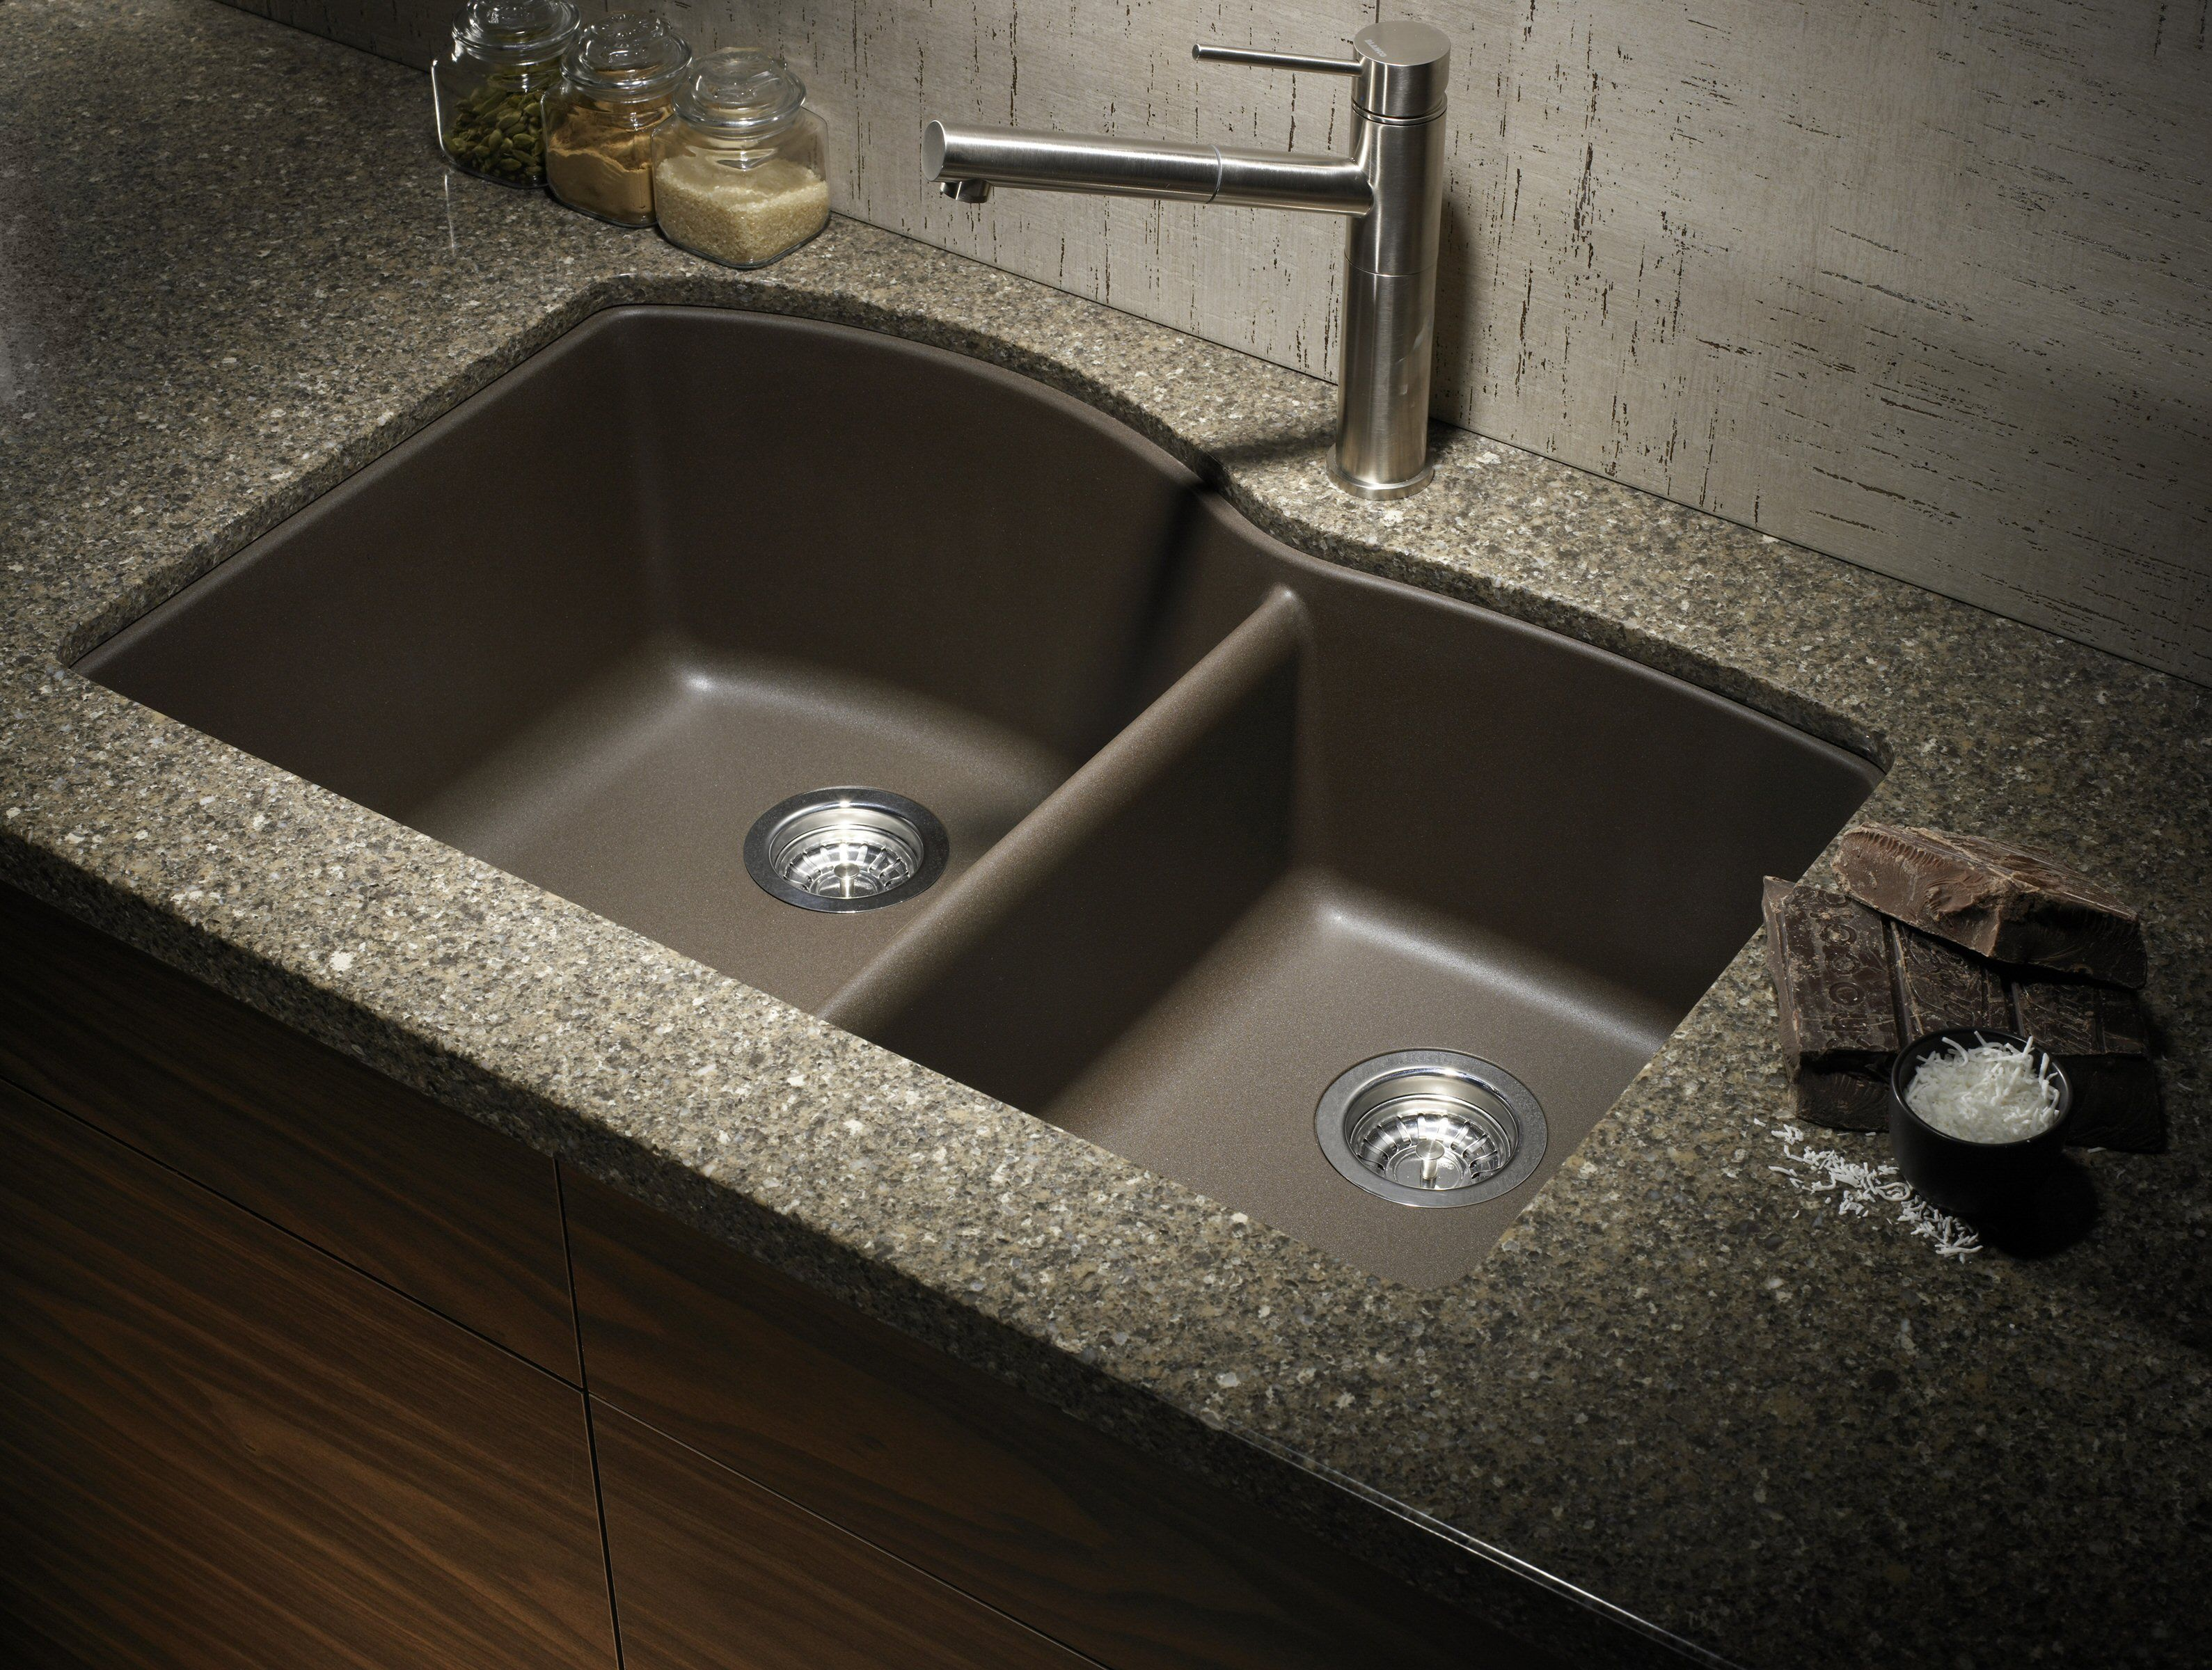 How To Clean A Granite Composite Sink